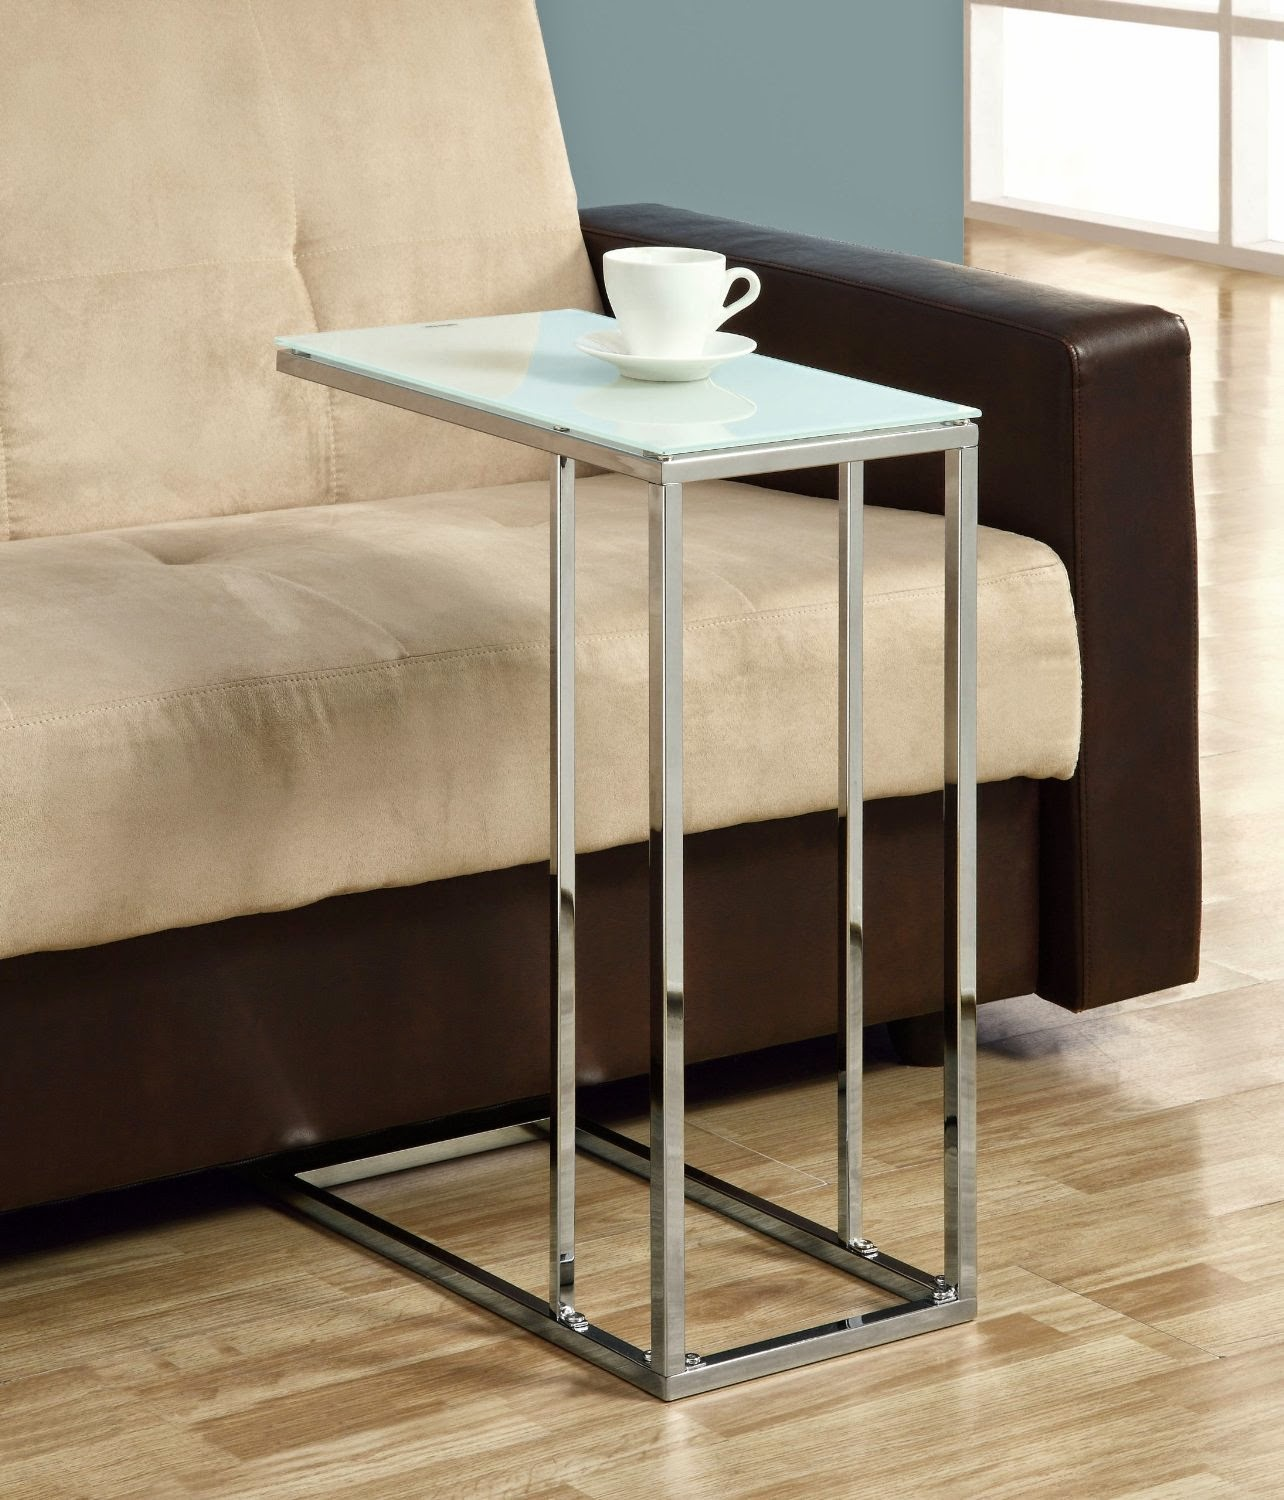 Small Drink Table Part - 41: White Glass Modern Under-Couch Snack/Drink Table